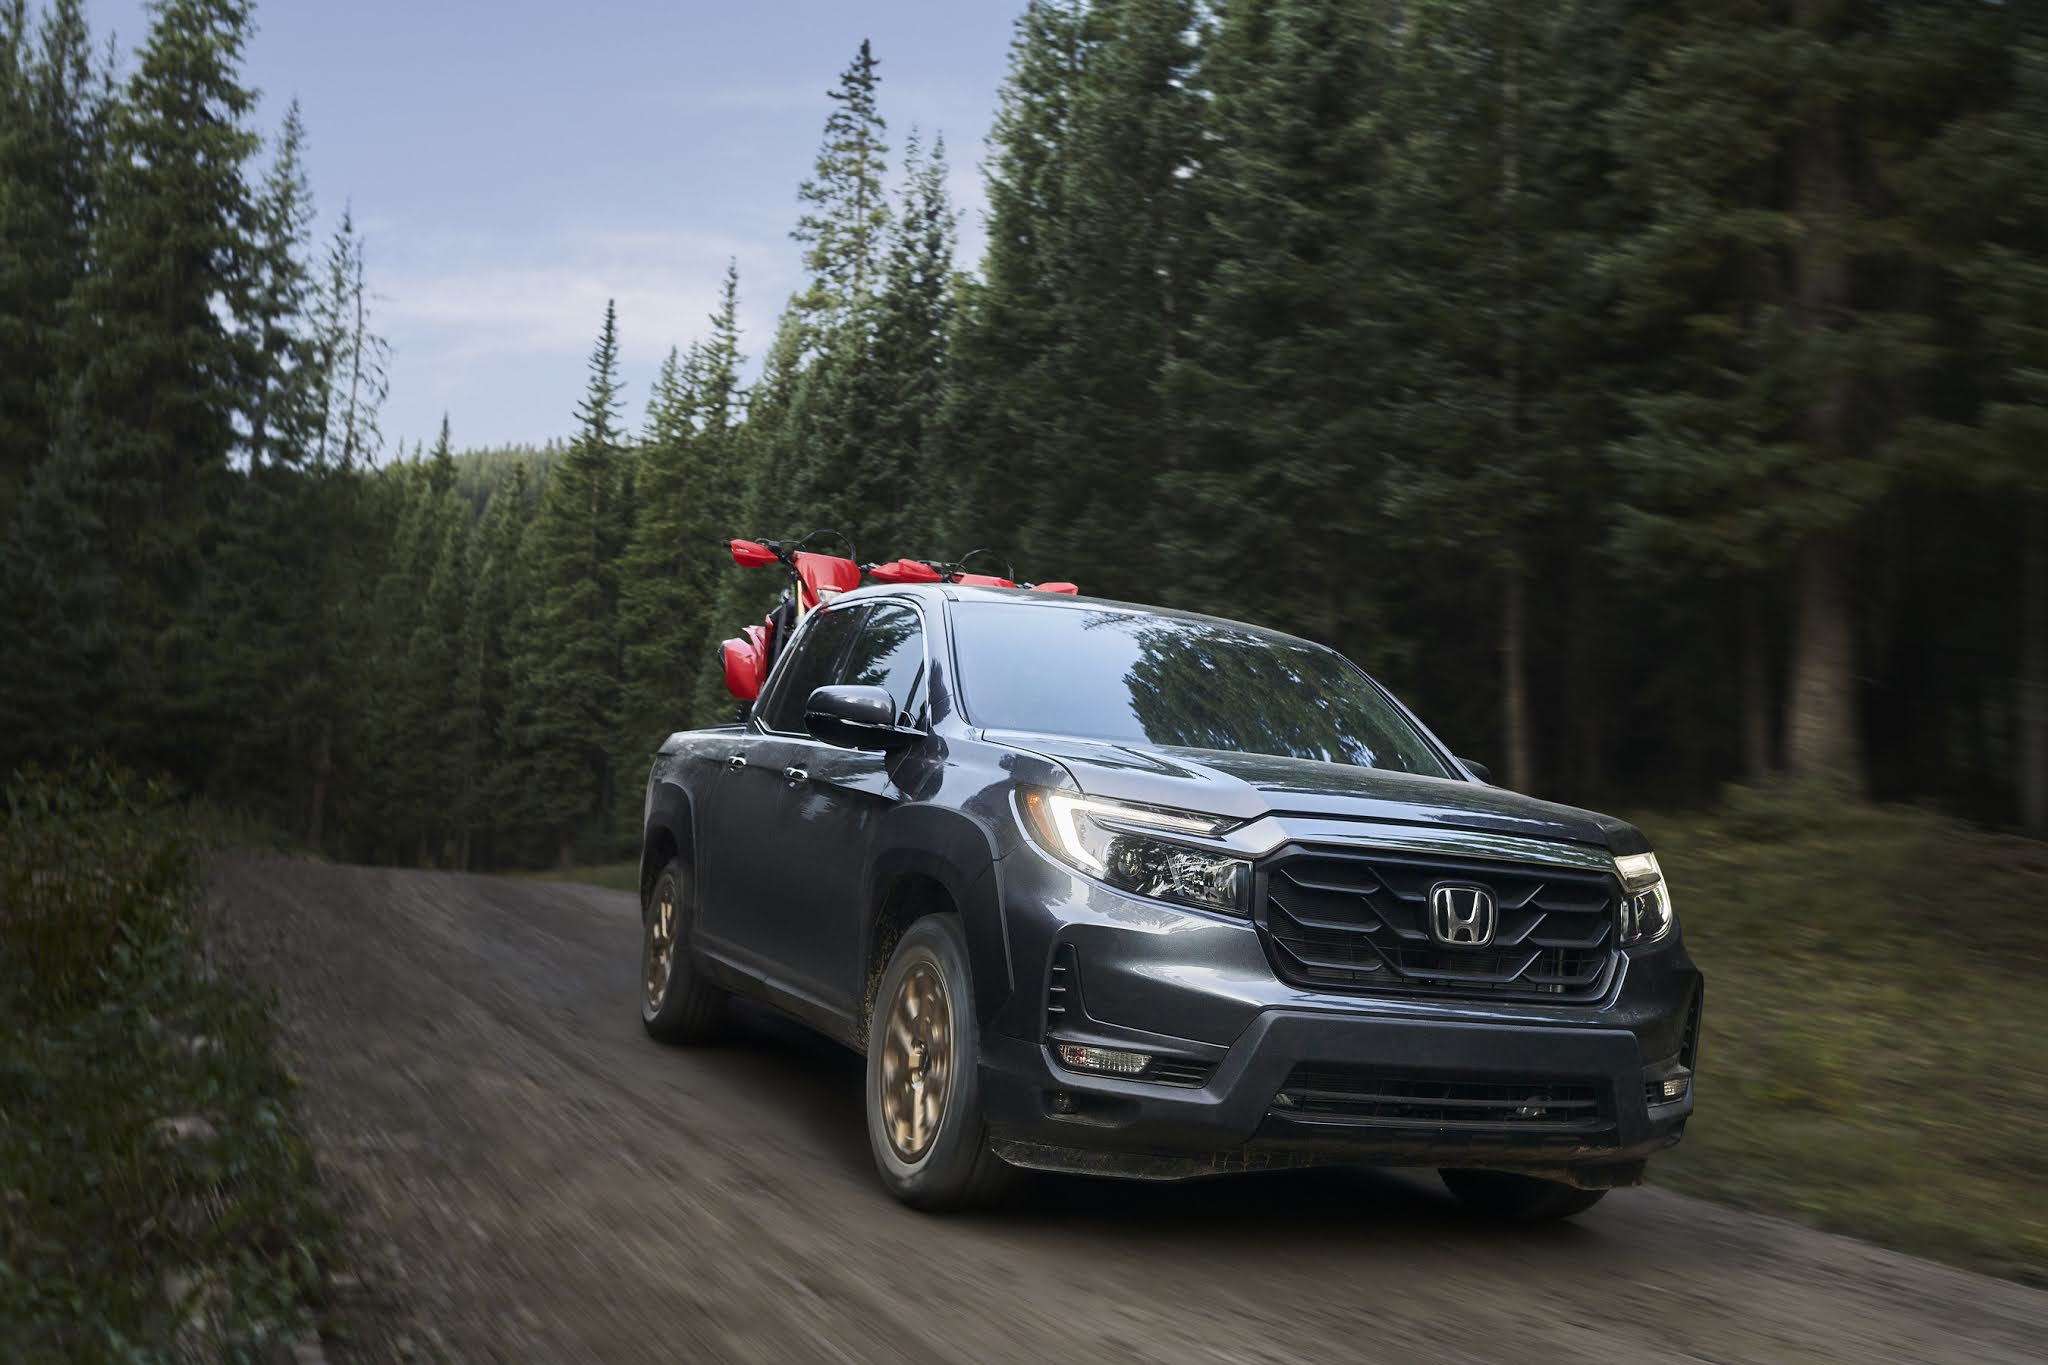 2021 Honda Ridgeline Arriving Next Month Ready to Rumble with Rugged New Look